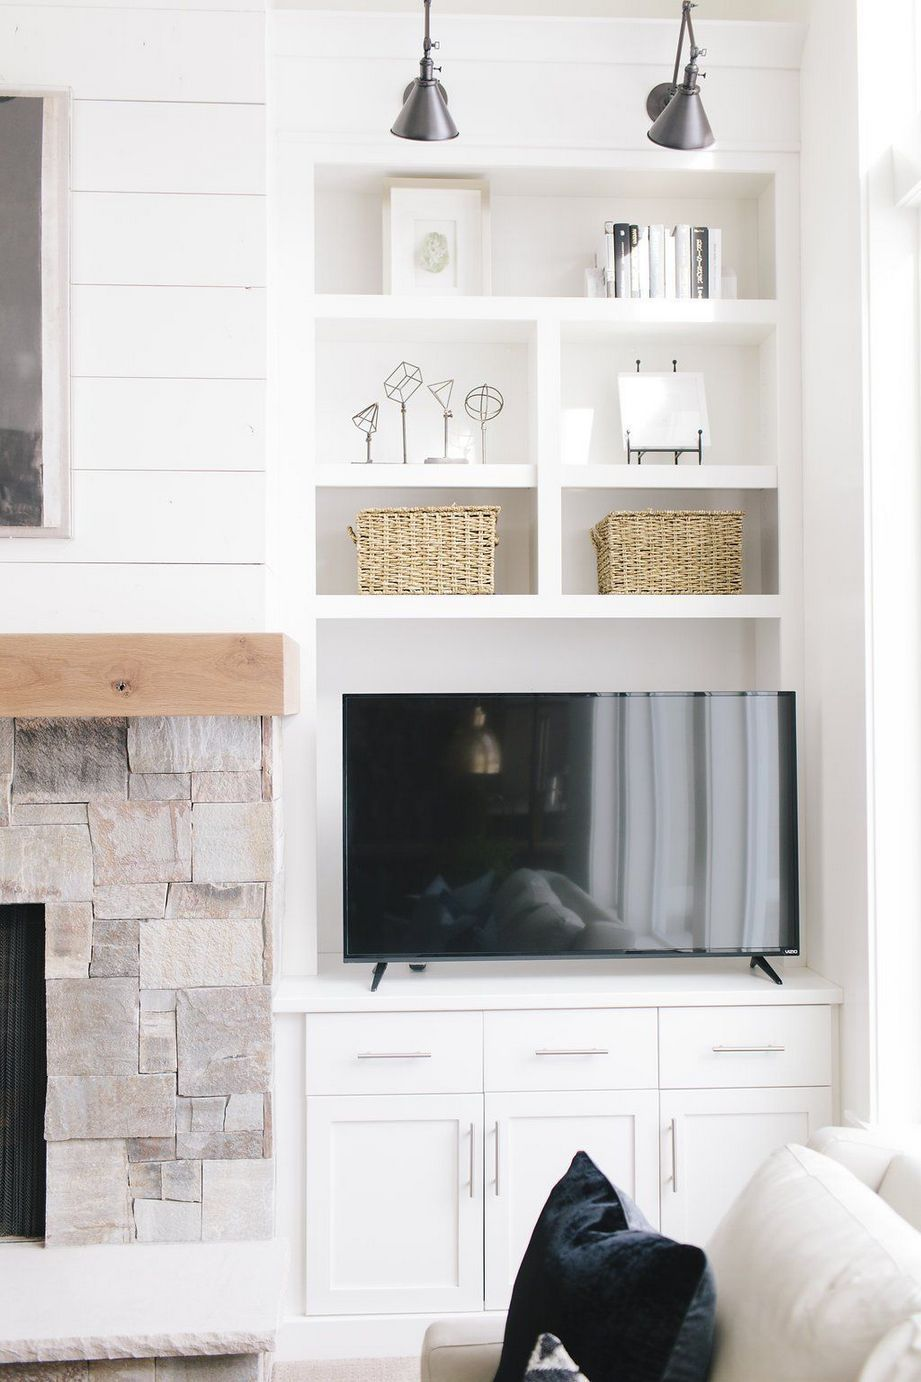 +23 Ideas To Small Family Room Ideas With Fireplace And Tv 54 images